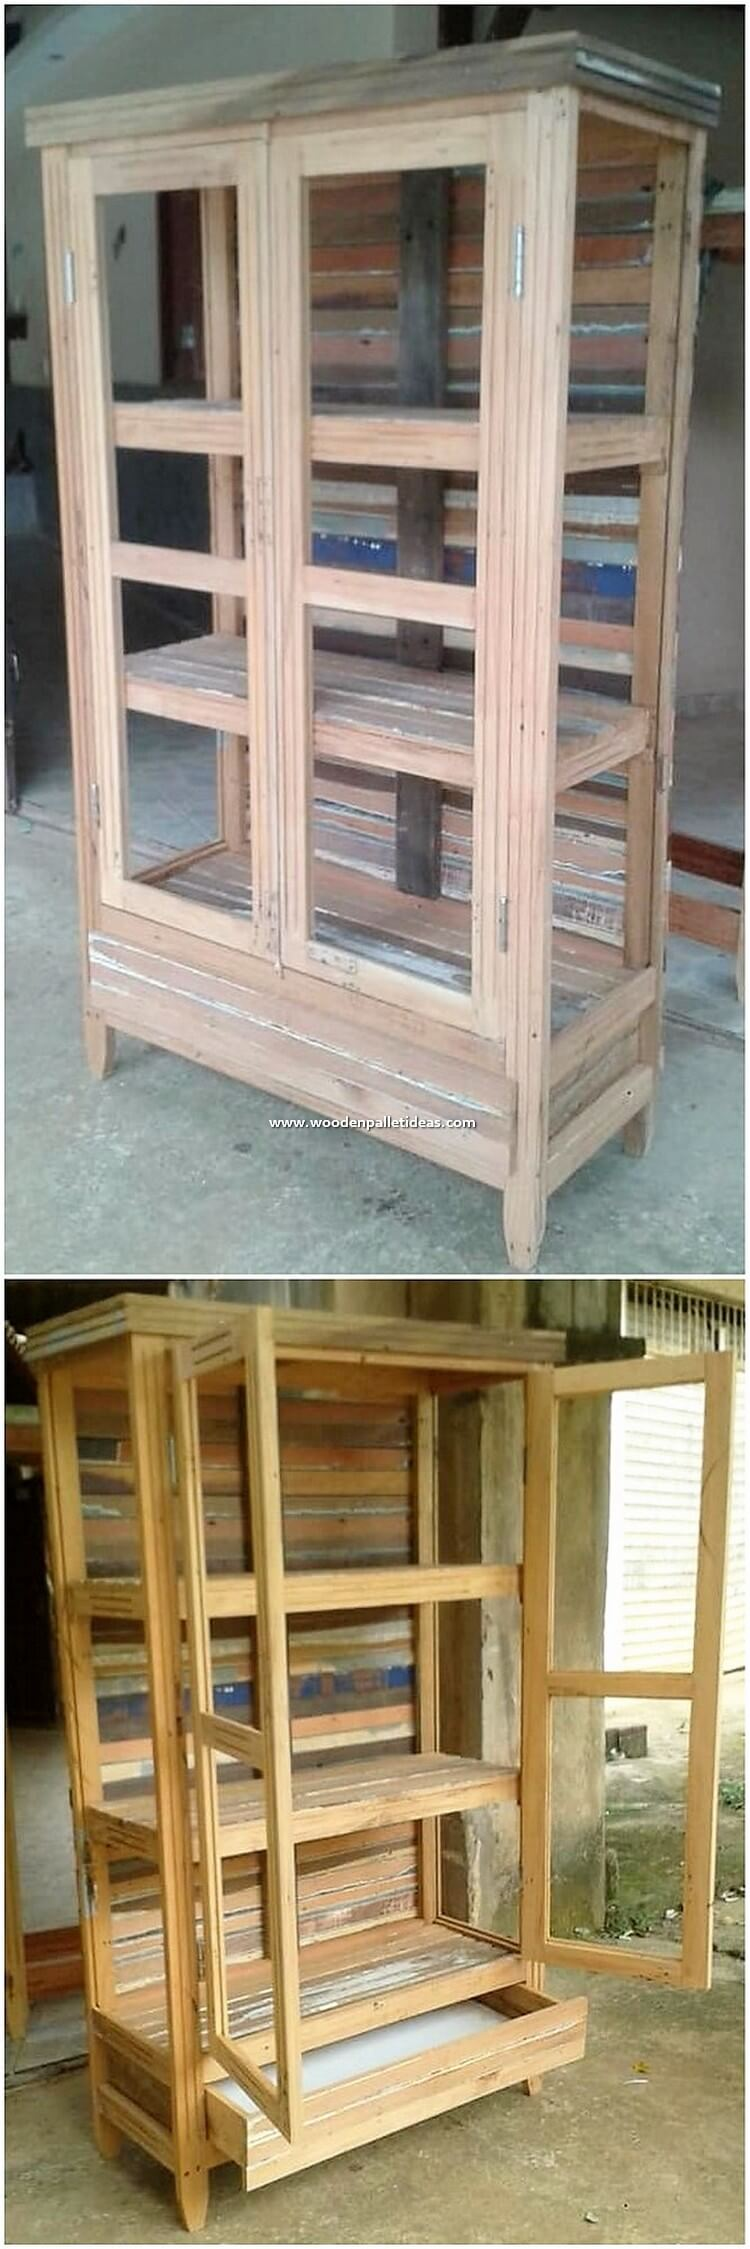 Wood Pallet Hutch or Cabinet